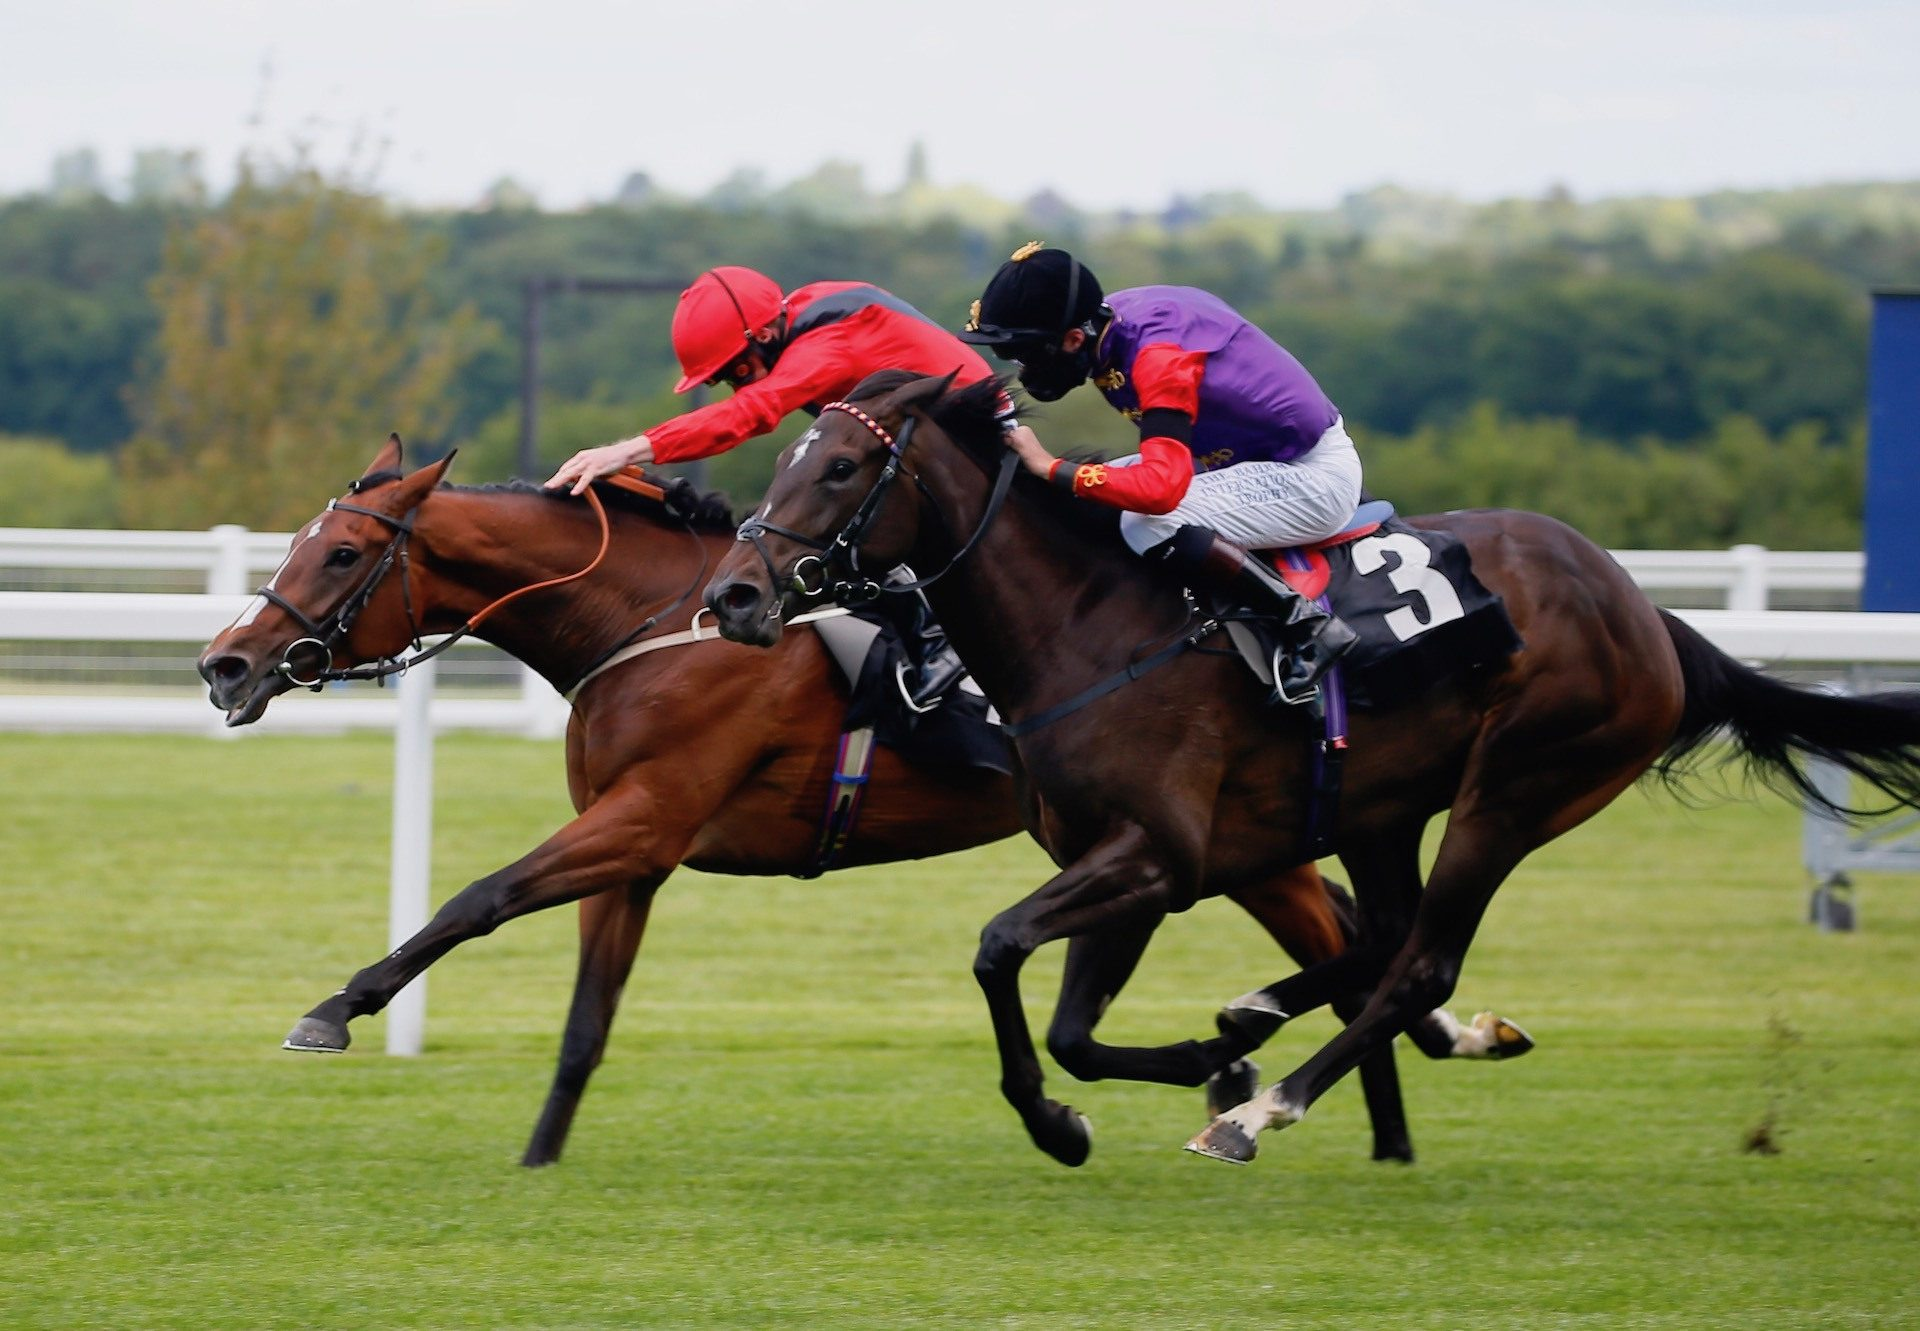 Margaret Dumont (Camelot) Wins Her Maiden At Ascot